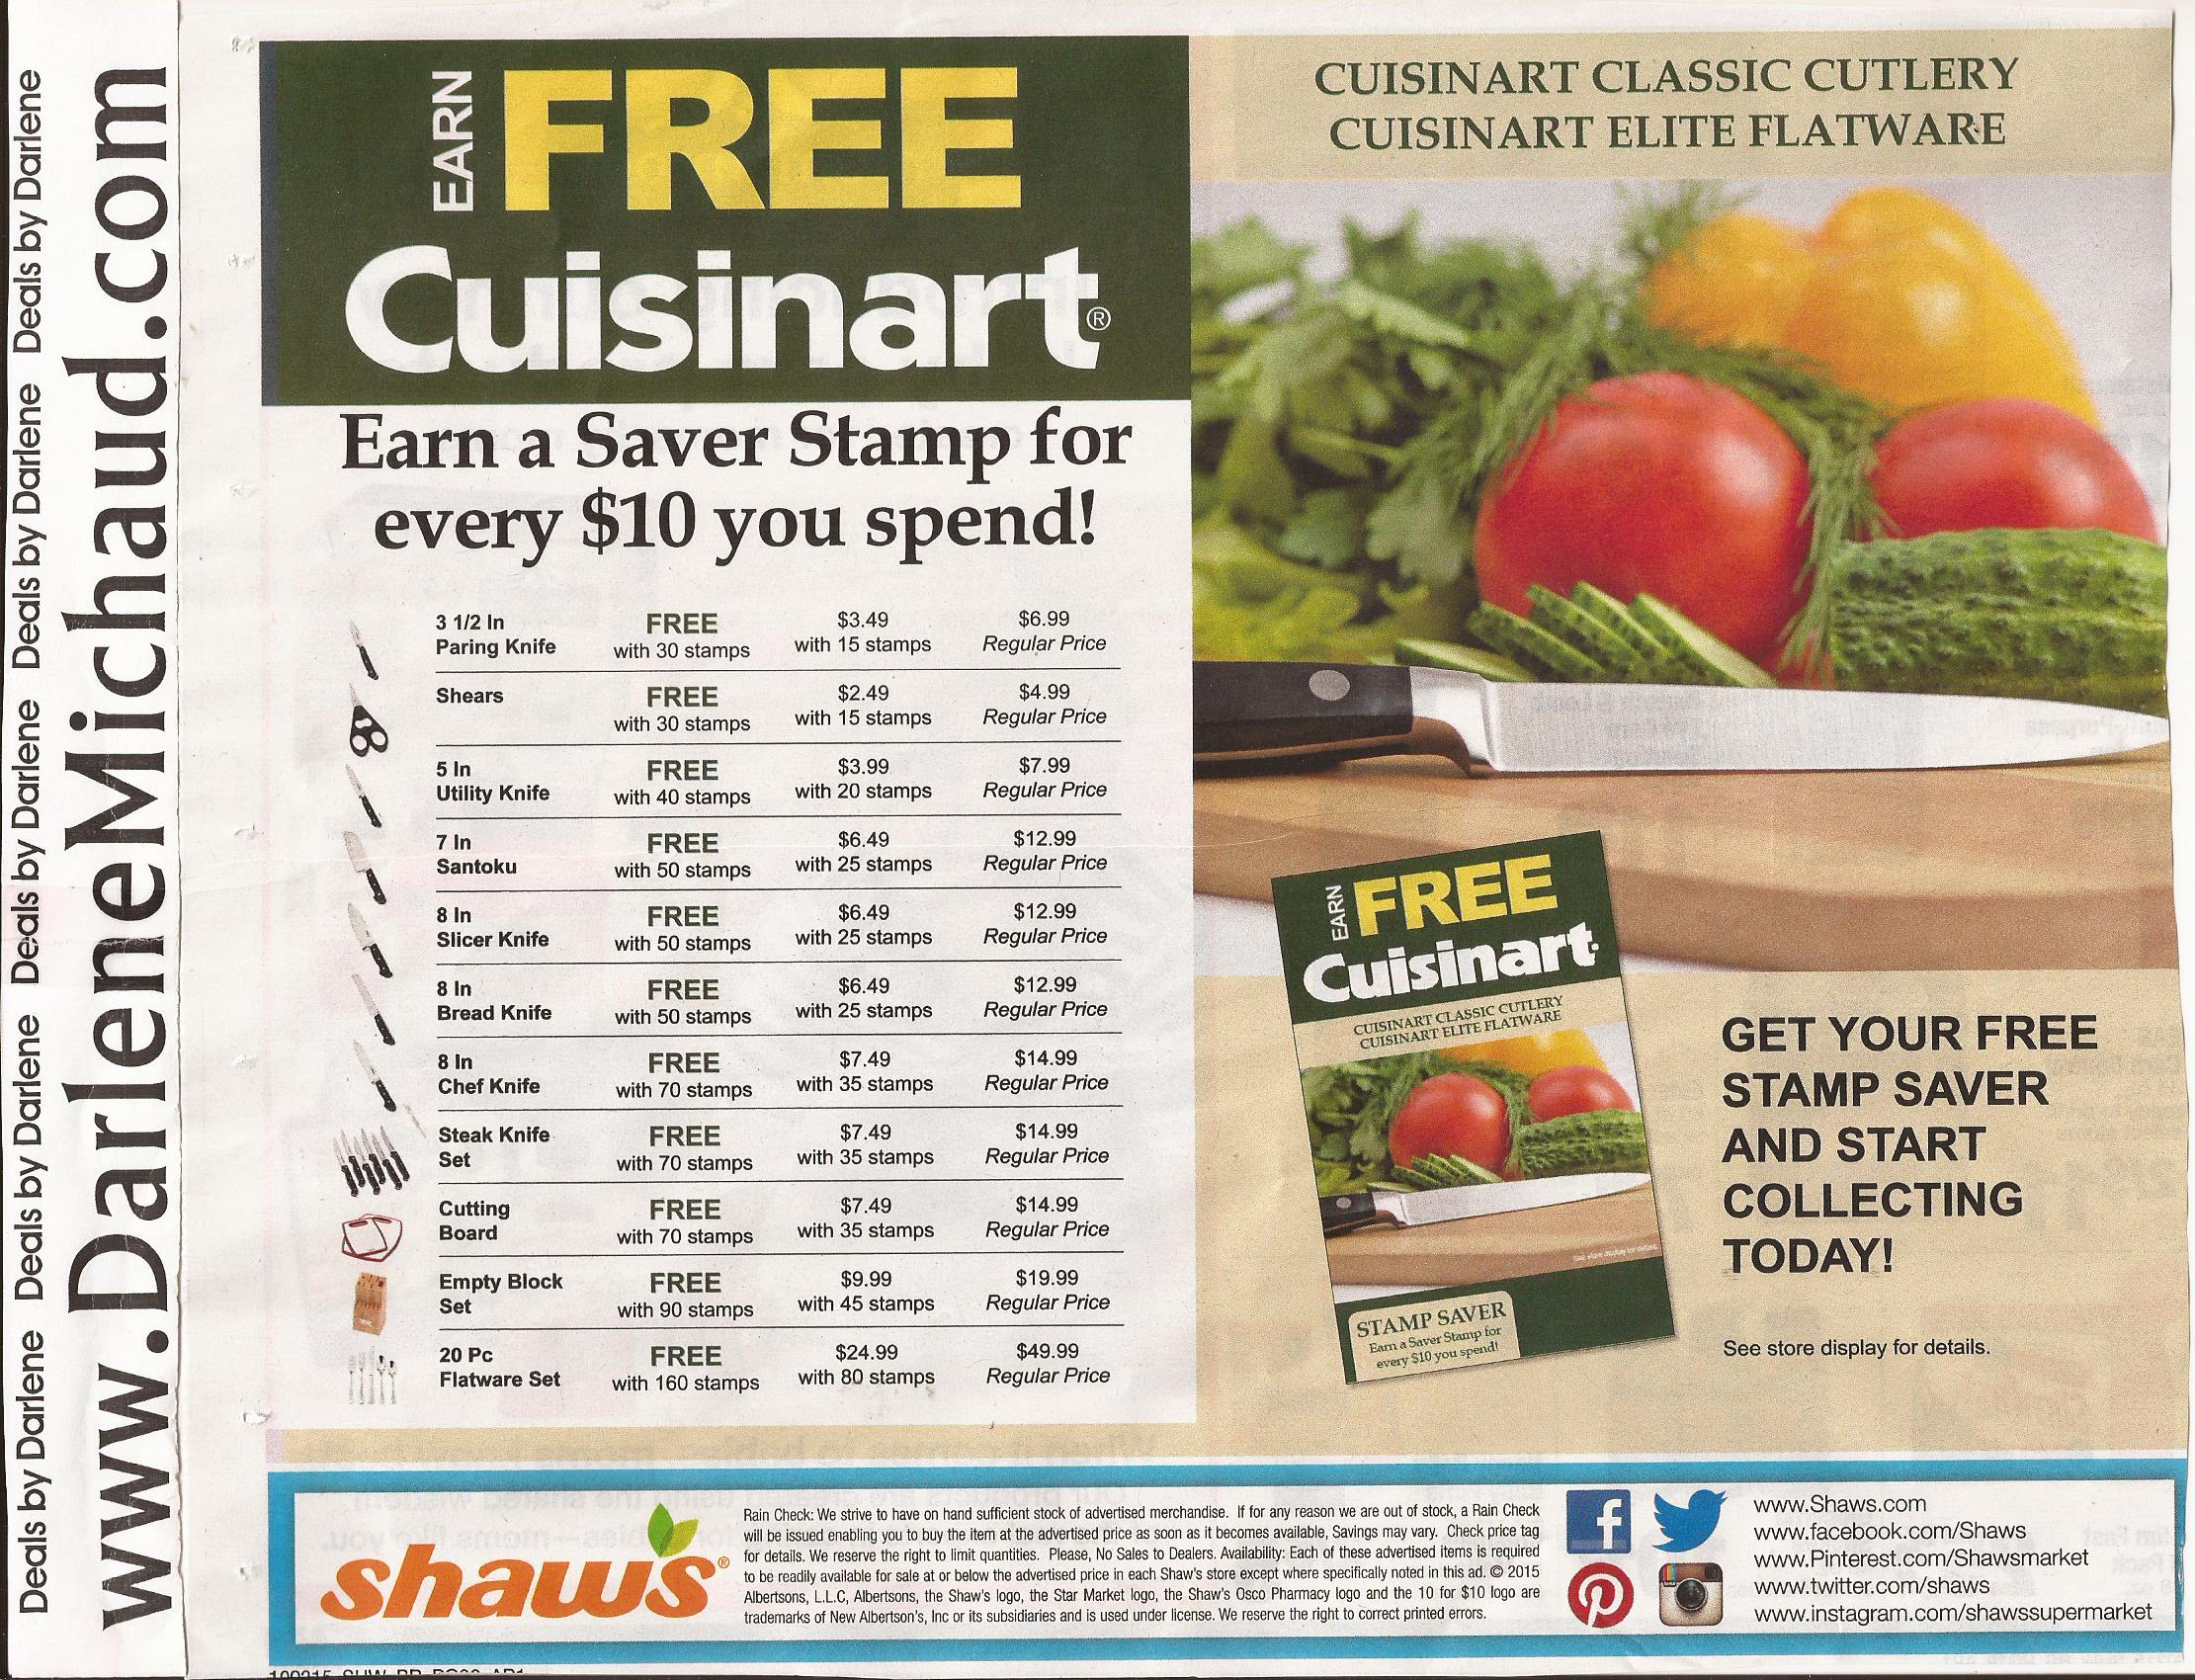 shaws-big-book-savings-10-2-10-29-page-20